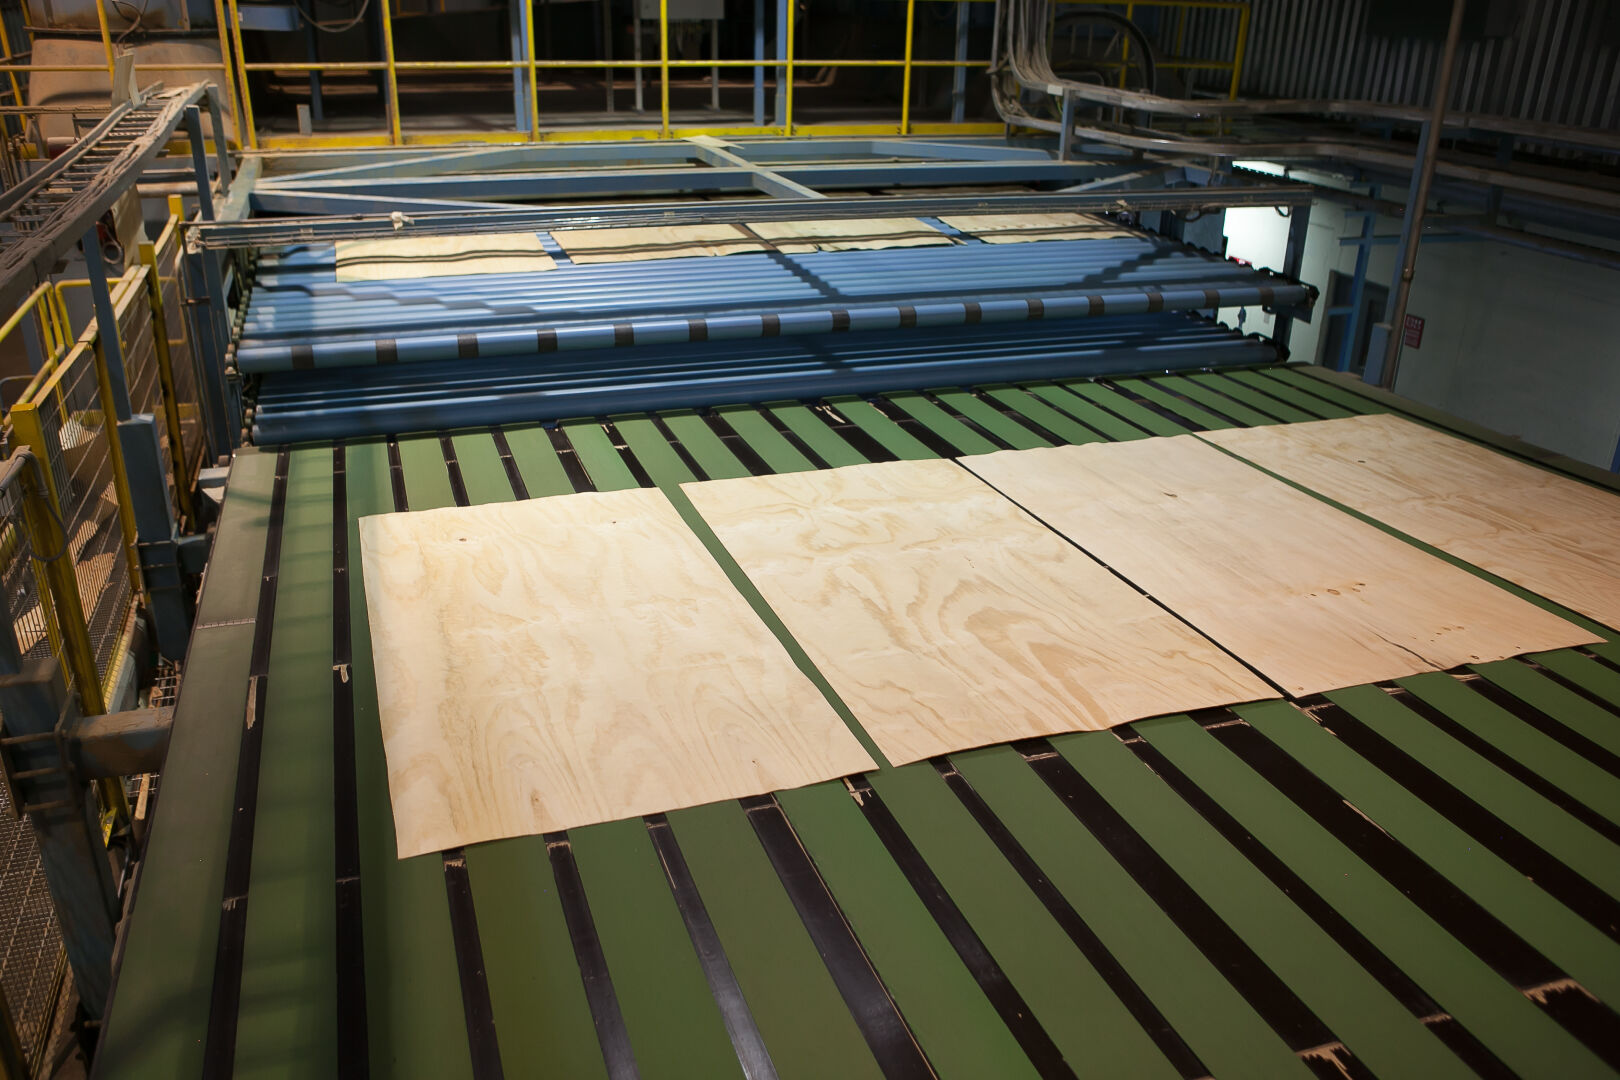 Crossing station of the dryer guides the veneer sheets to one conveyor leading to grading and sorting line.